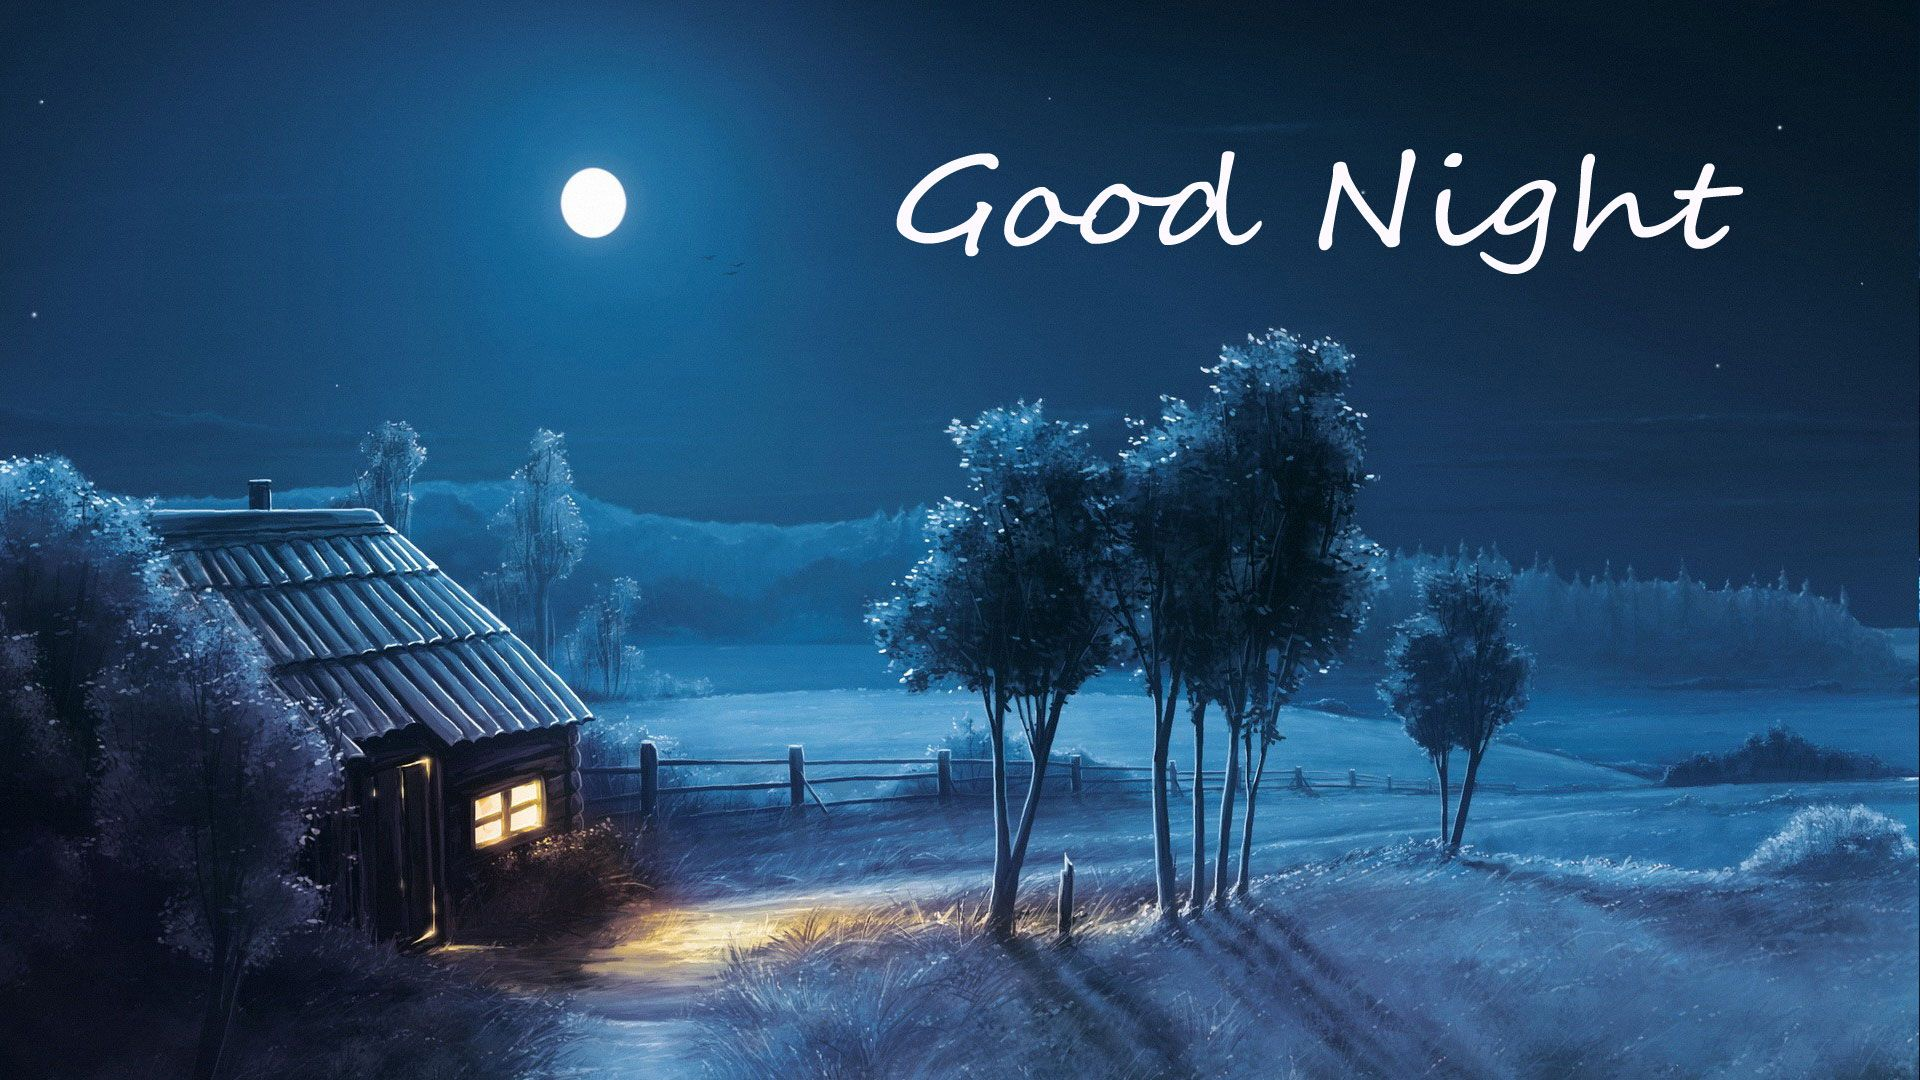 Cute Romantic Wallpapers For Whatsapp Some Cute Good Night Images In Full Hd Resolution